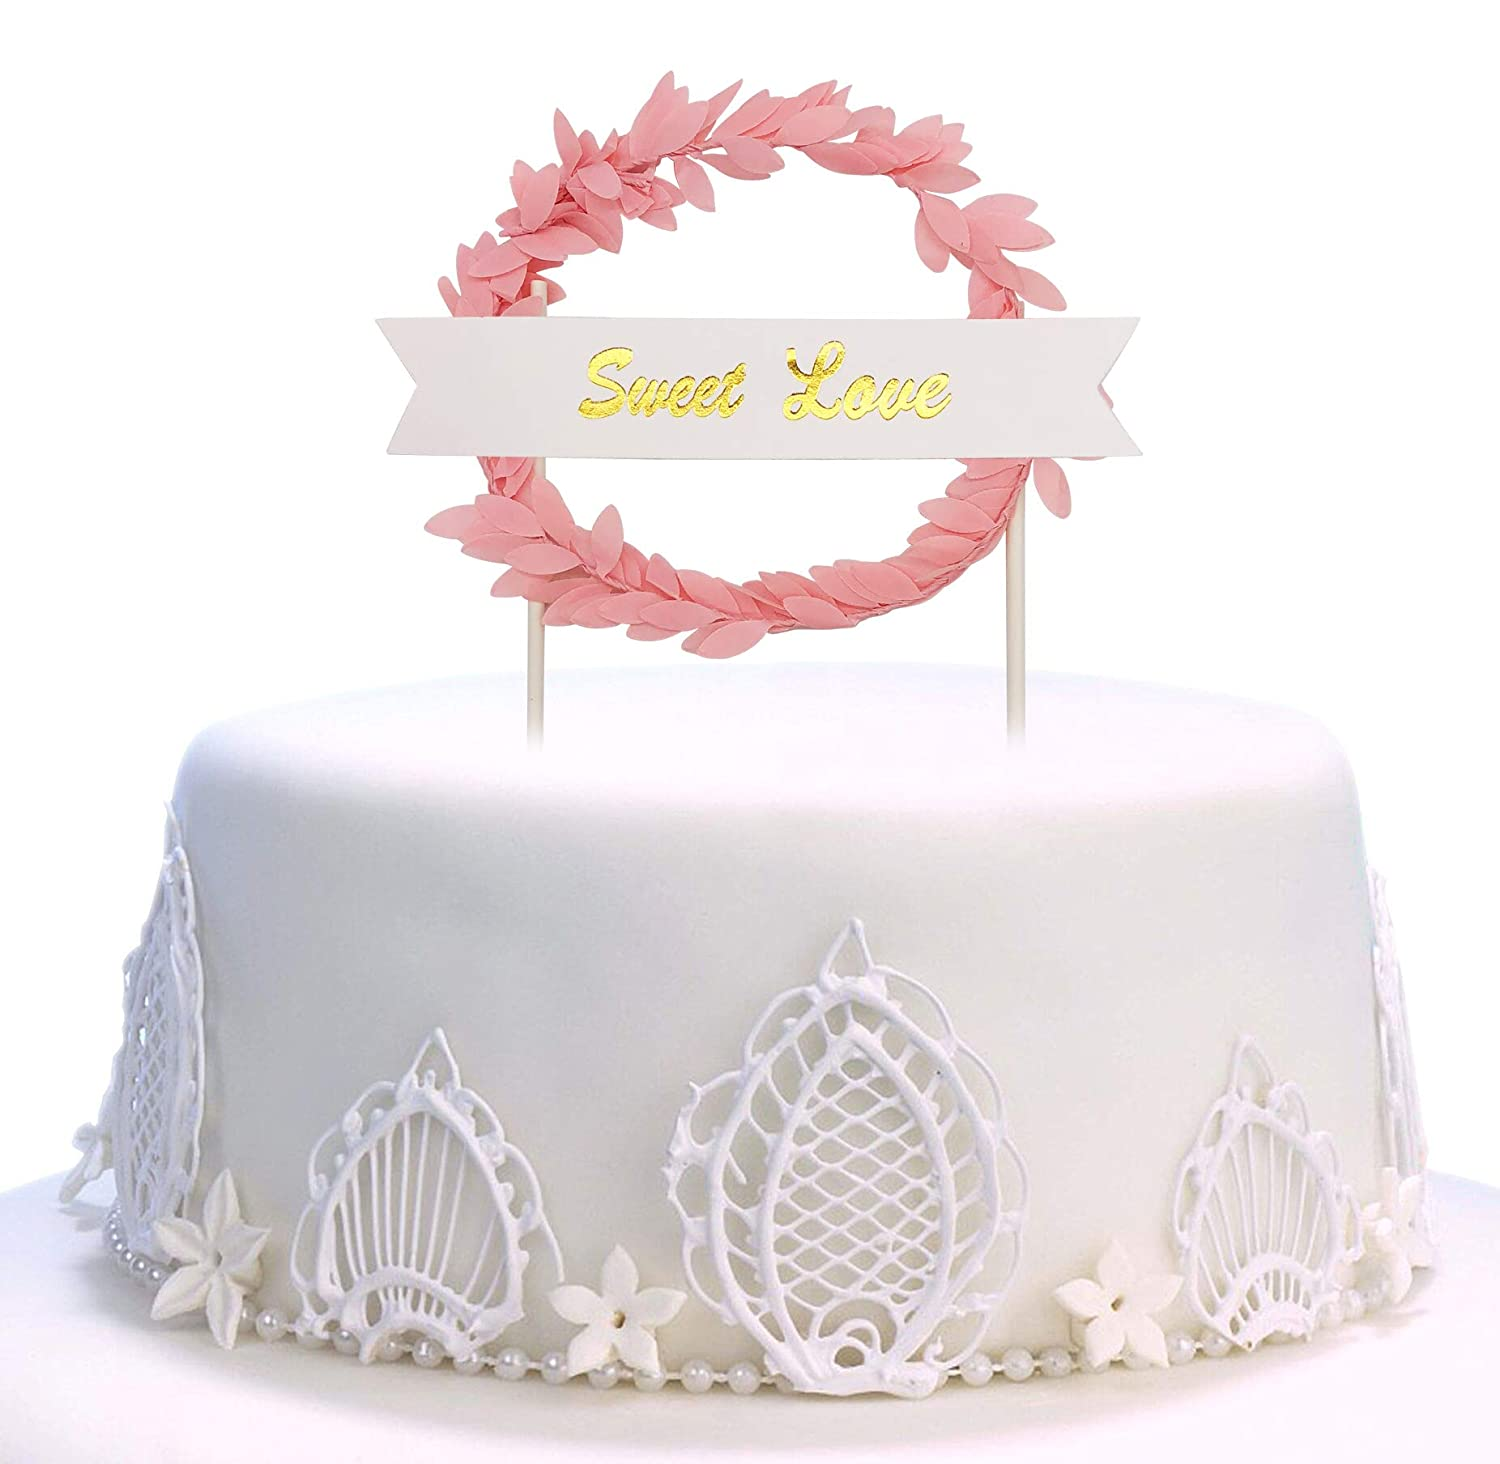 Leaf Ring Cake Topper Happy Birthday Twinkle DIY Glitter First Cupcake Smash Candle Alternative Party Handmade Pink